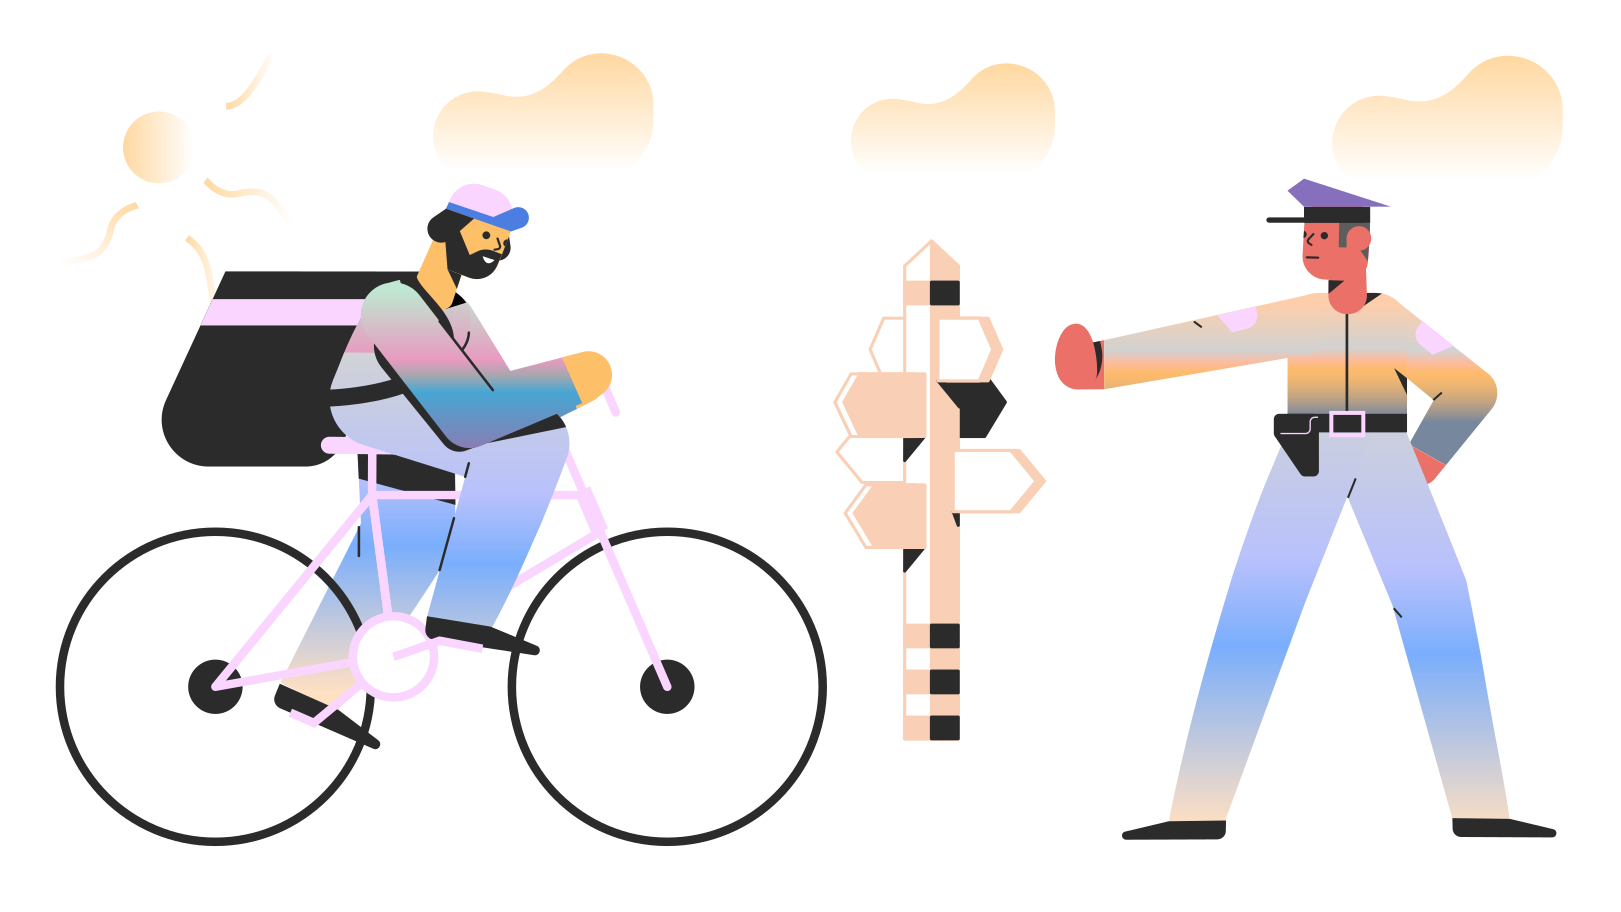 Police officer stops bicycle Clipart illustration in PNG, SVG